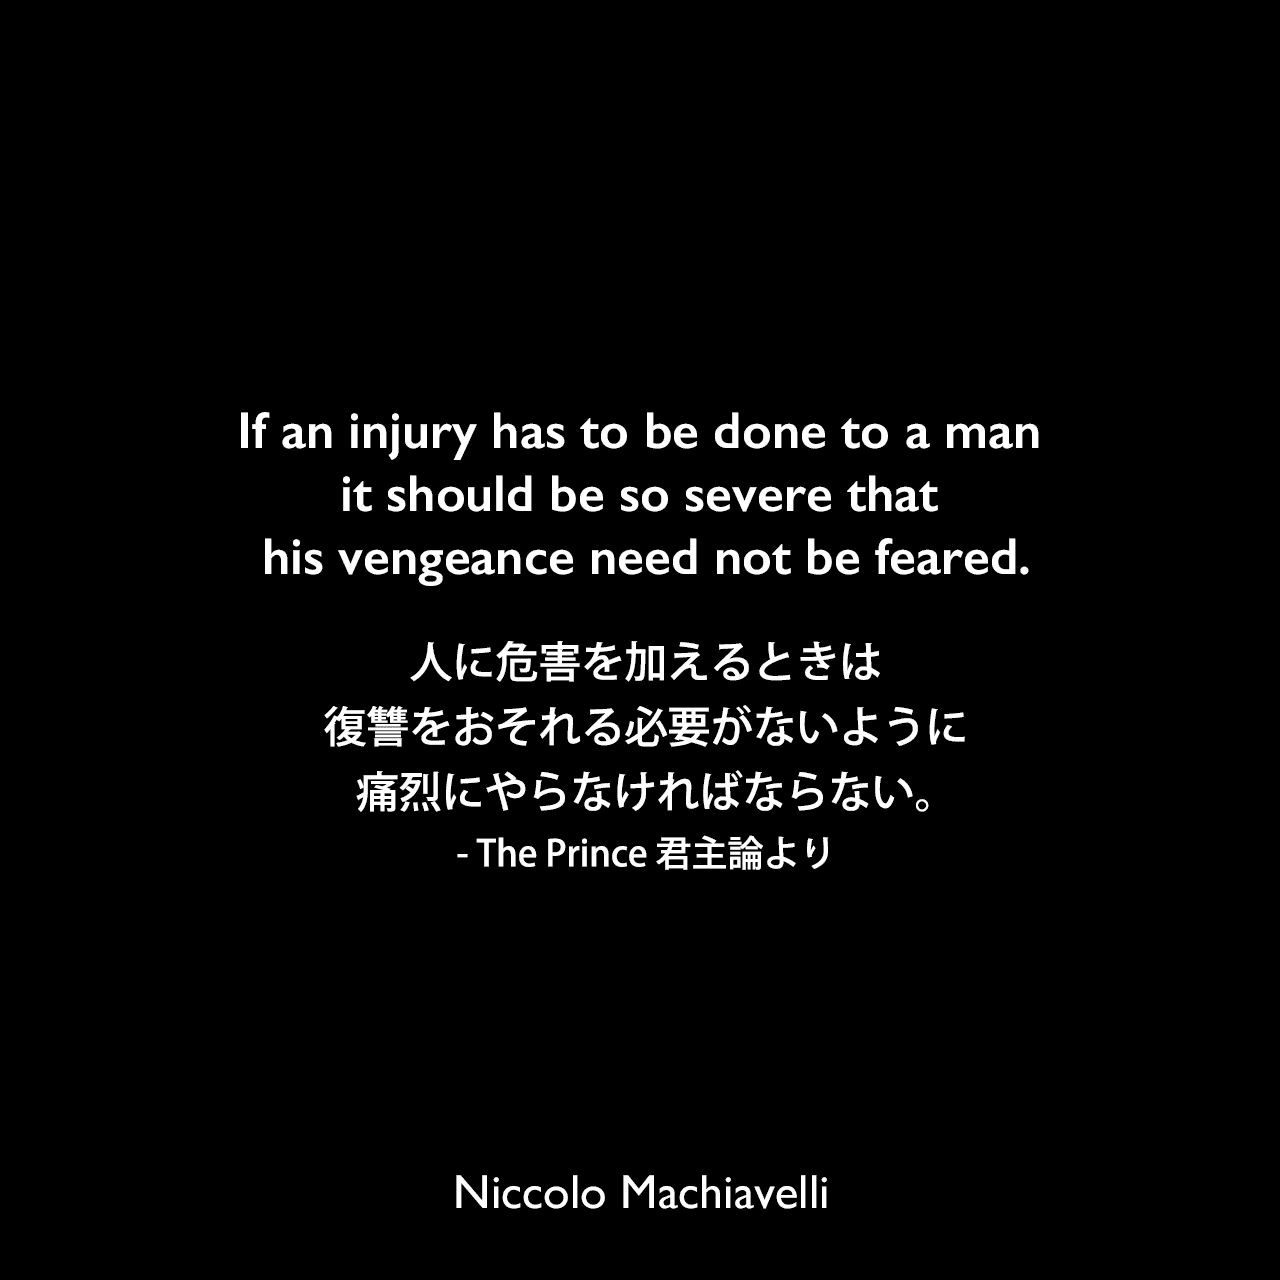 If an injury has to be done to a man it should be so severe that his vengeance need not be feared.人に危害を加えるときは、復讐をおそれる必要がないように痛烈にやらなければならない。- The Prince 君主論よりNiccolo Machiavelli